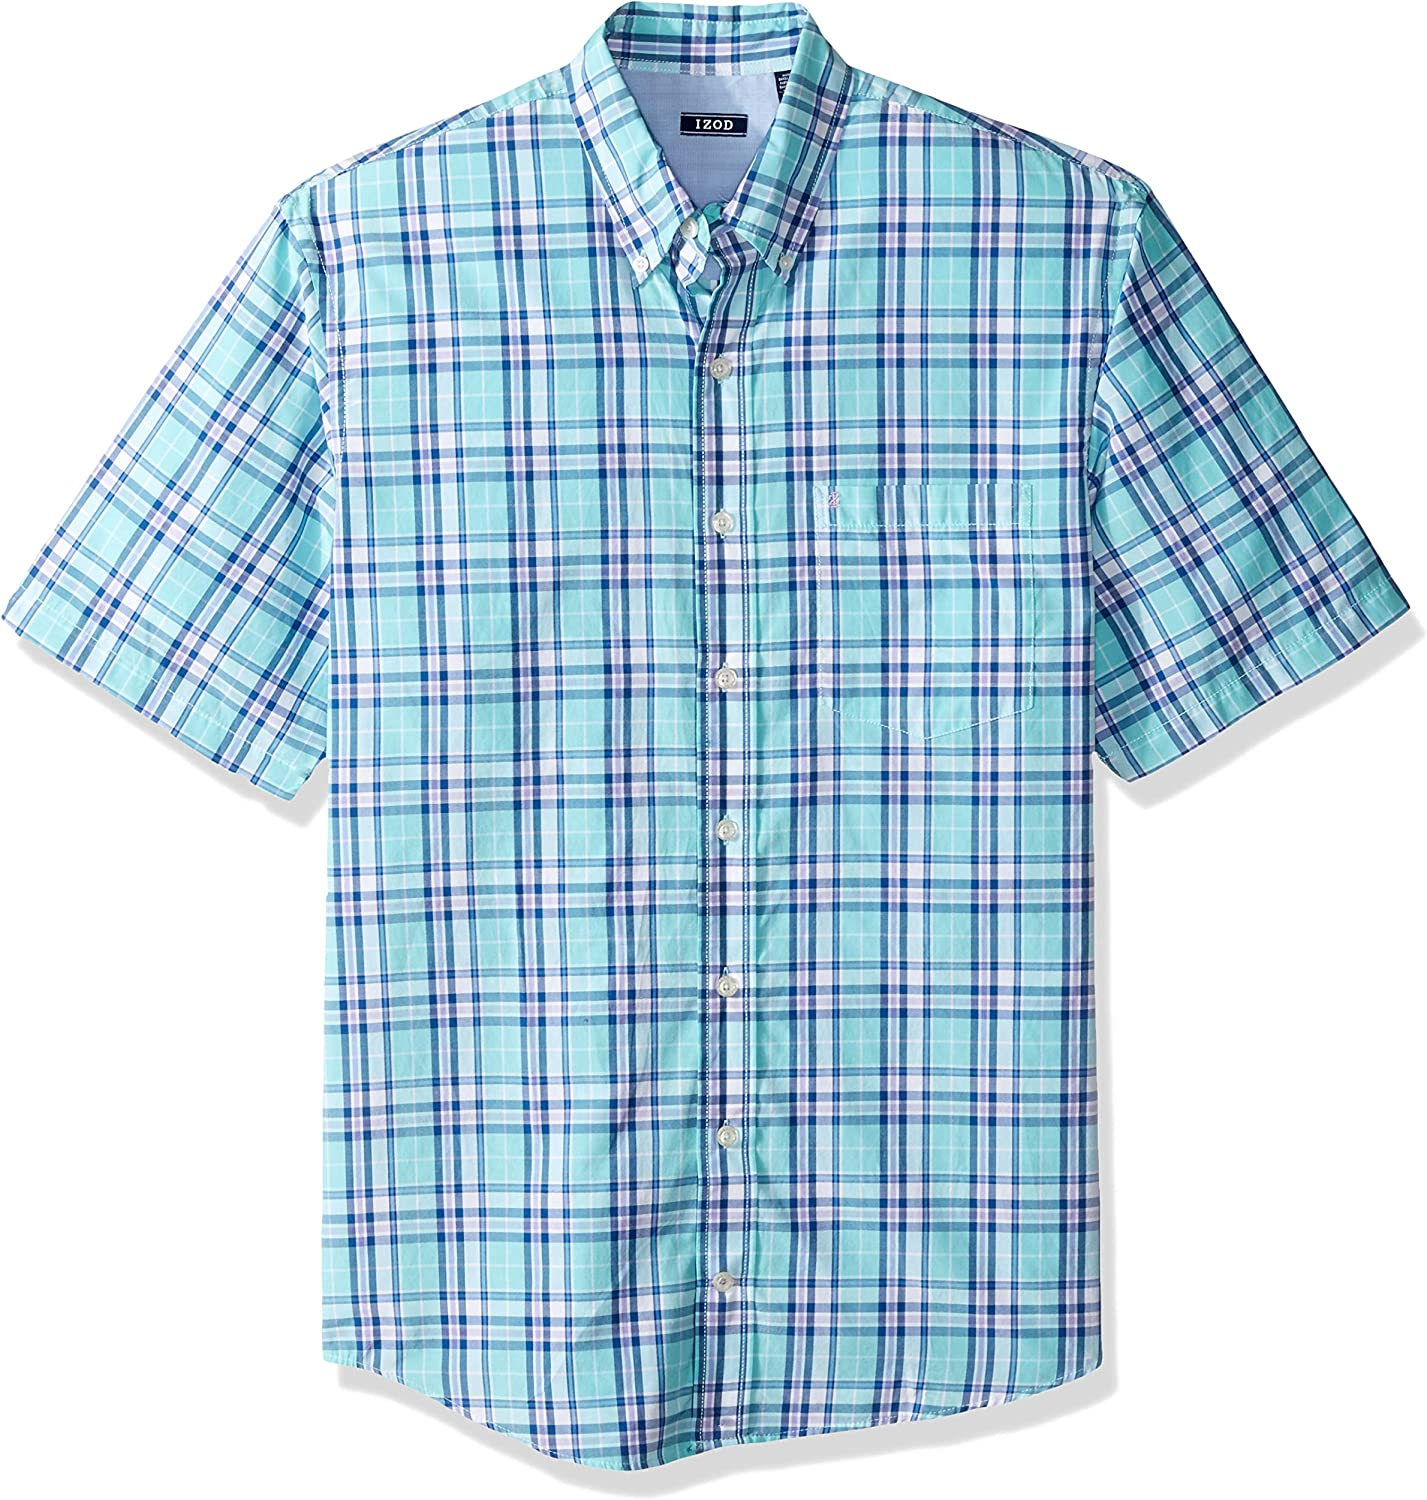 IZOD Mens Big and Tall Breeze Short Sleeve Button Down Plaid Shirt